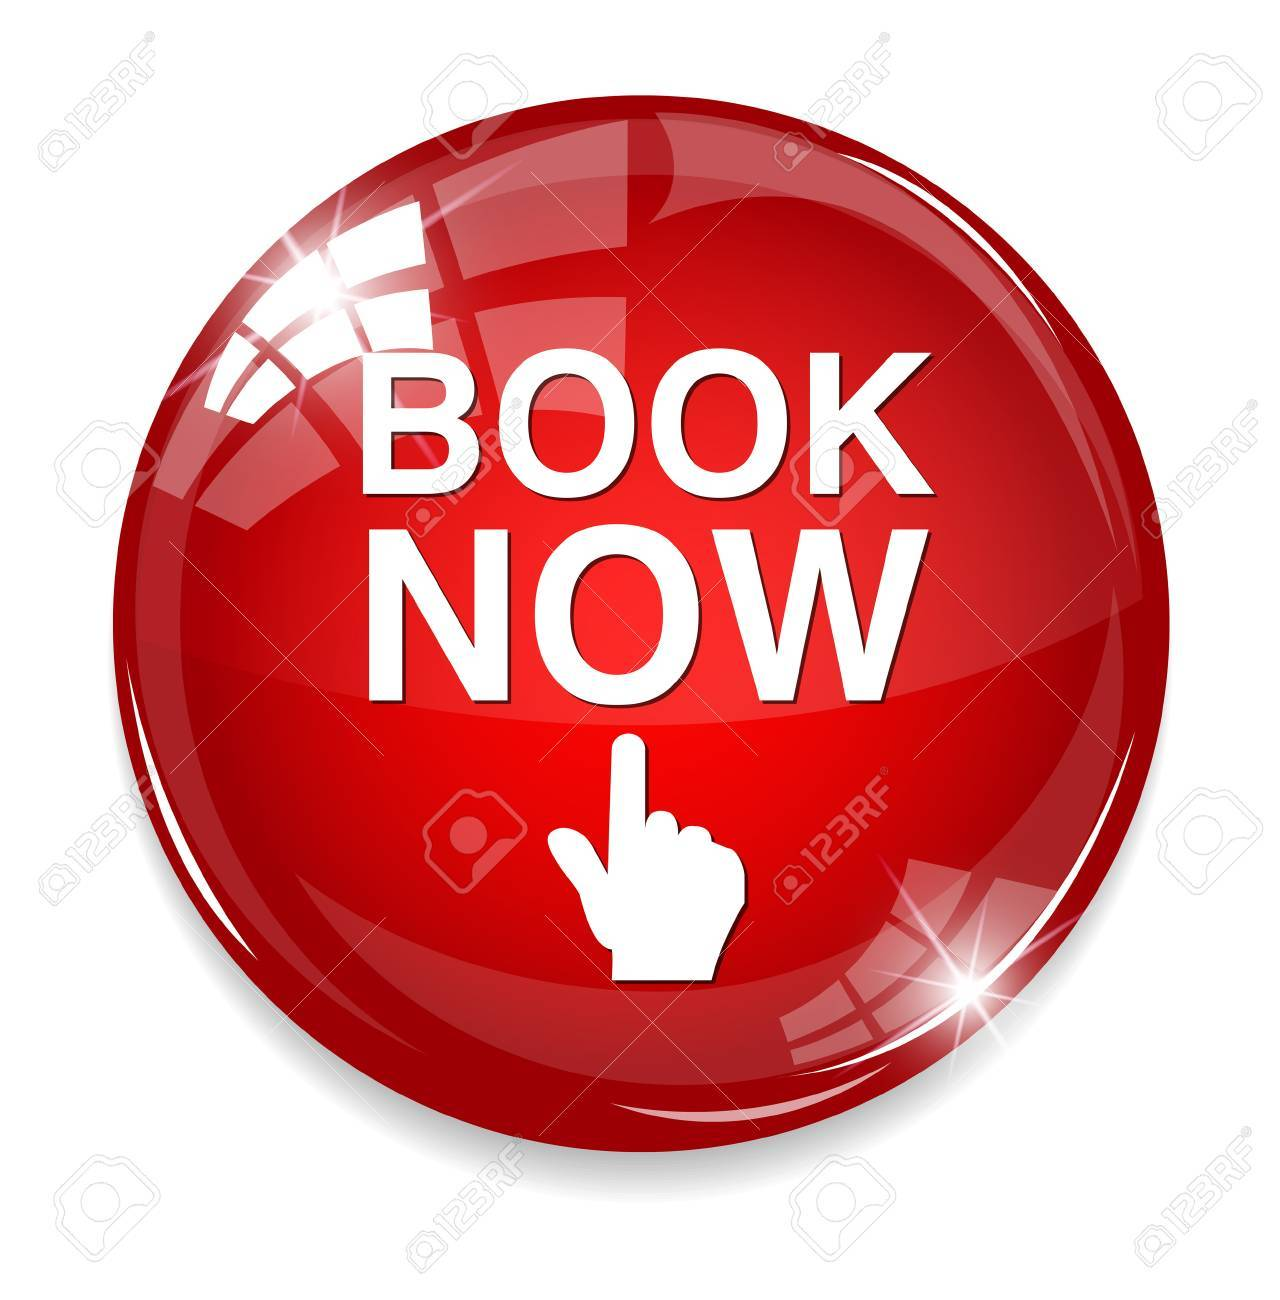 hight resolution of book now button book now button clipart